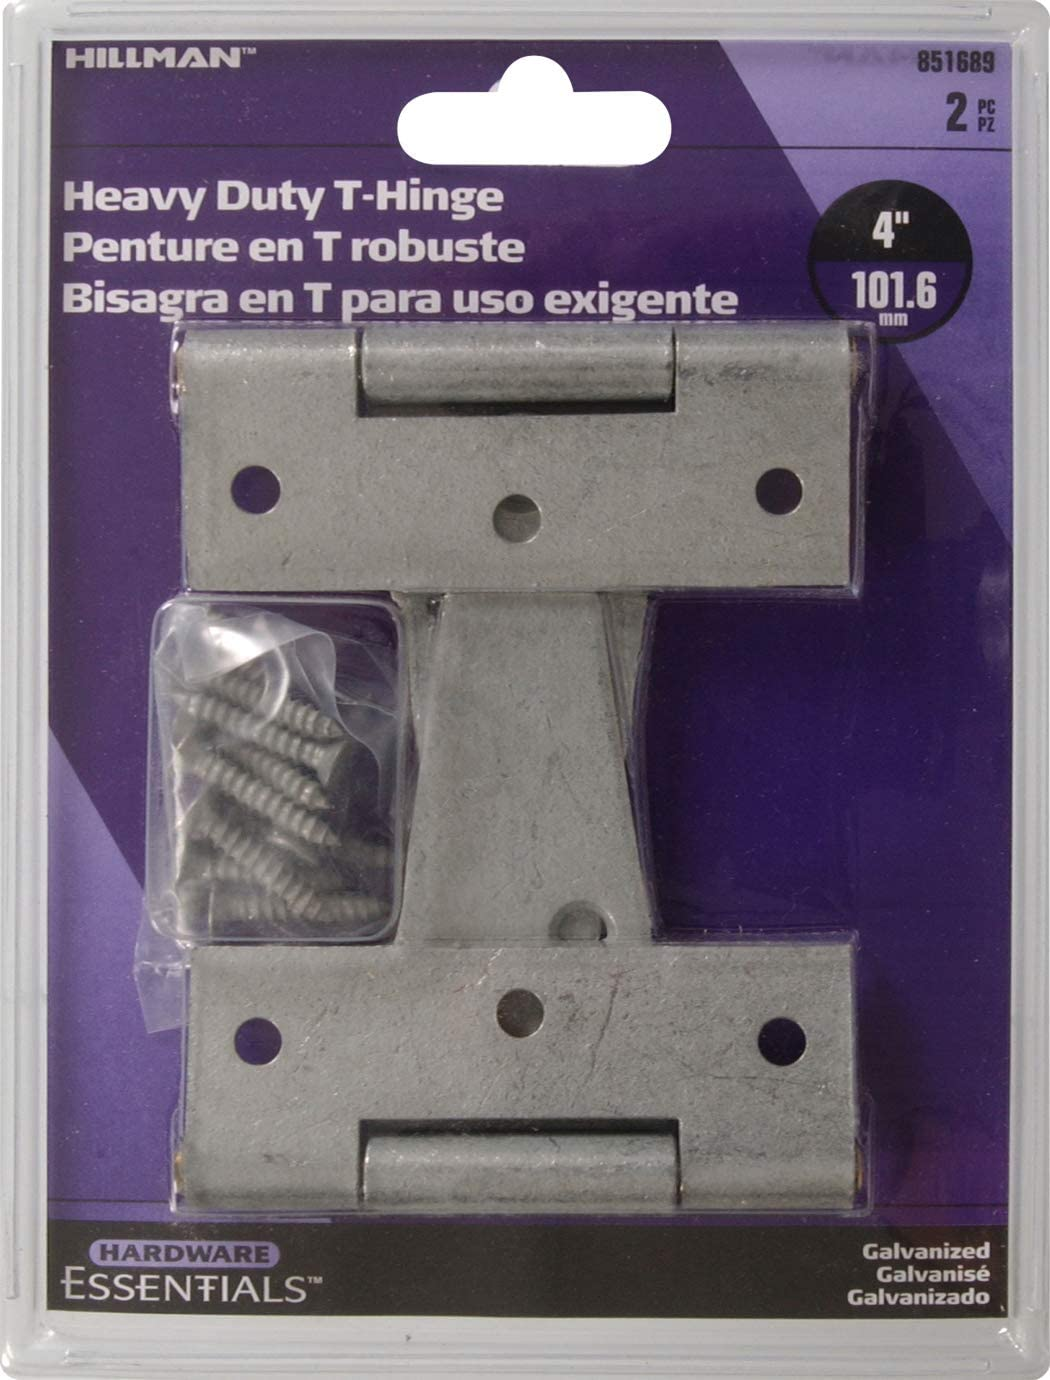 Hillman Hardware Essentials 851689 Duty excellence Selling Galvanize Heavy T-Hinges